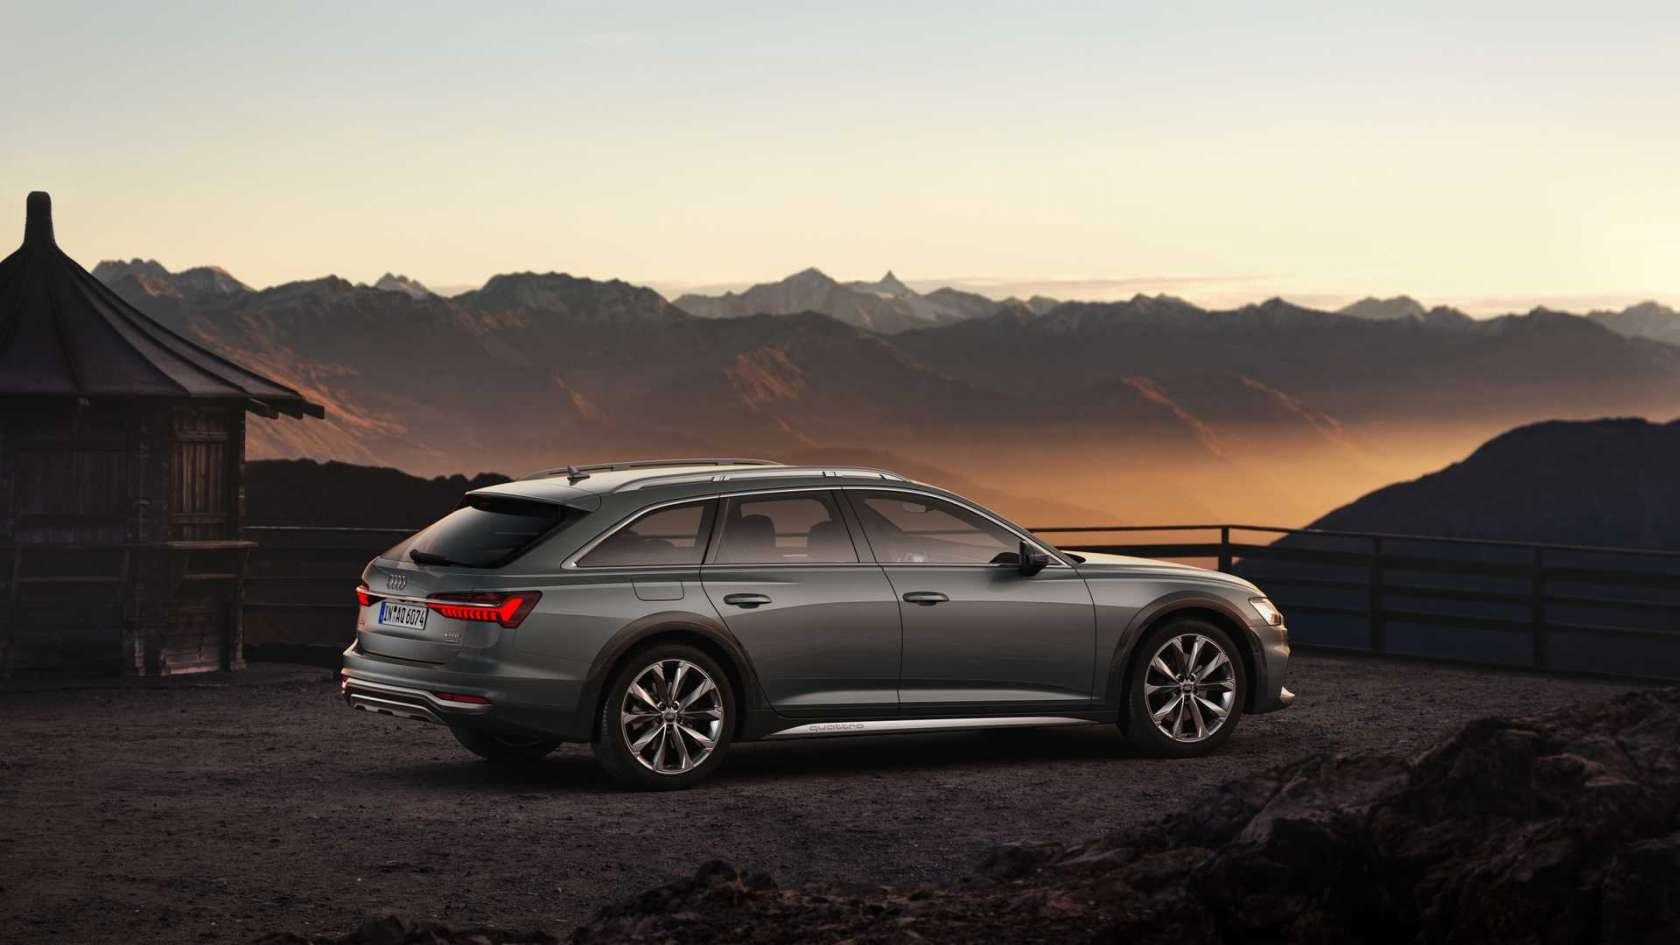 2020 Audi A6 Allroad is also coming to the US! - dlmag